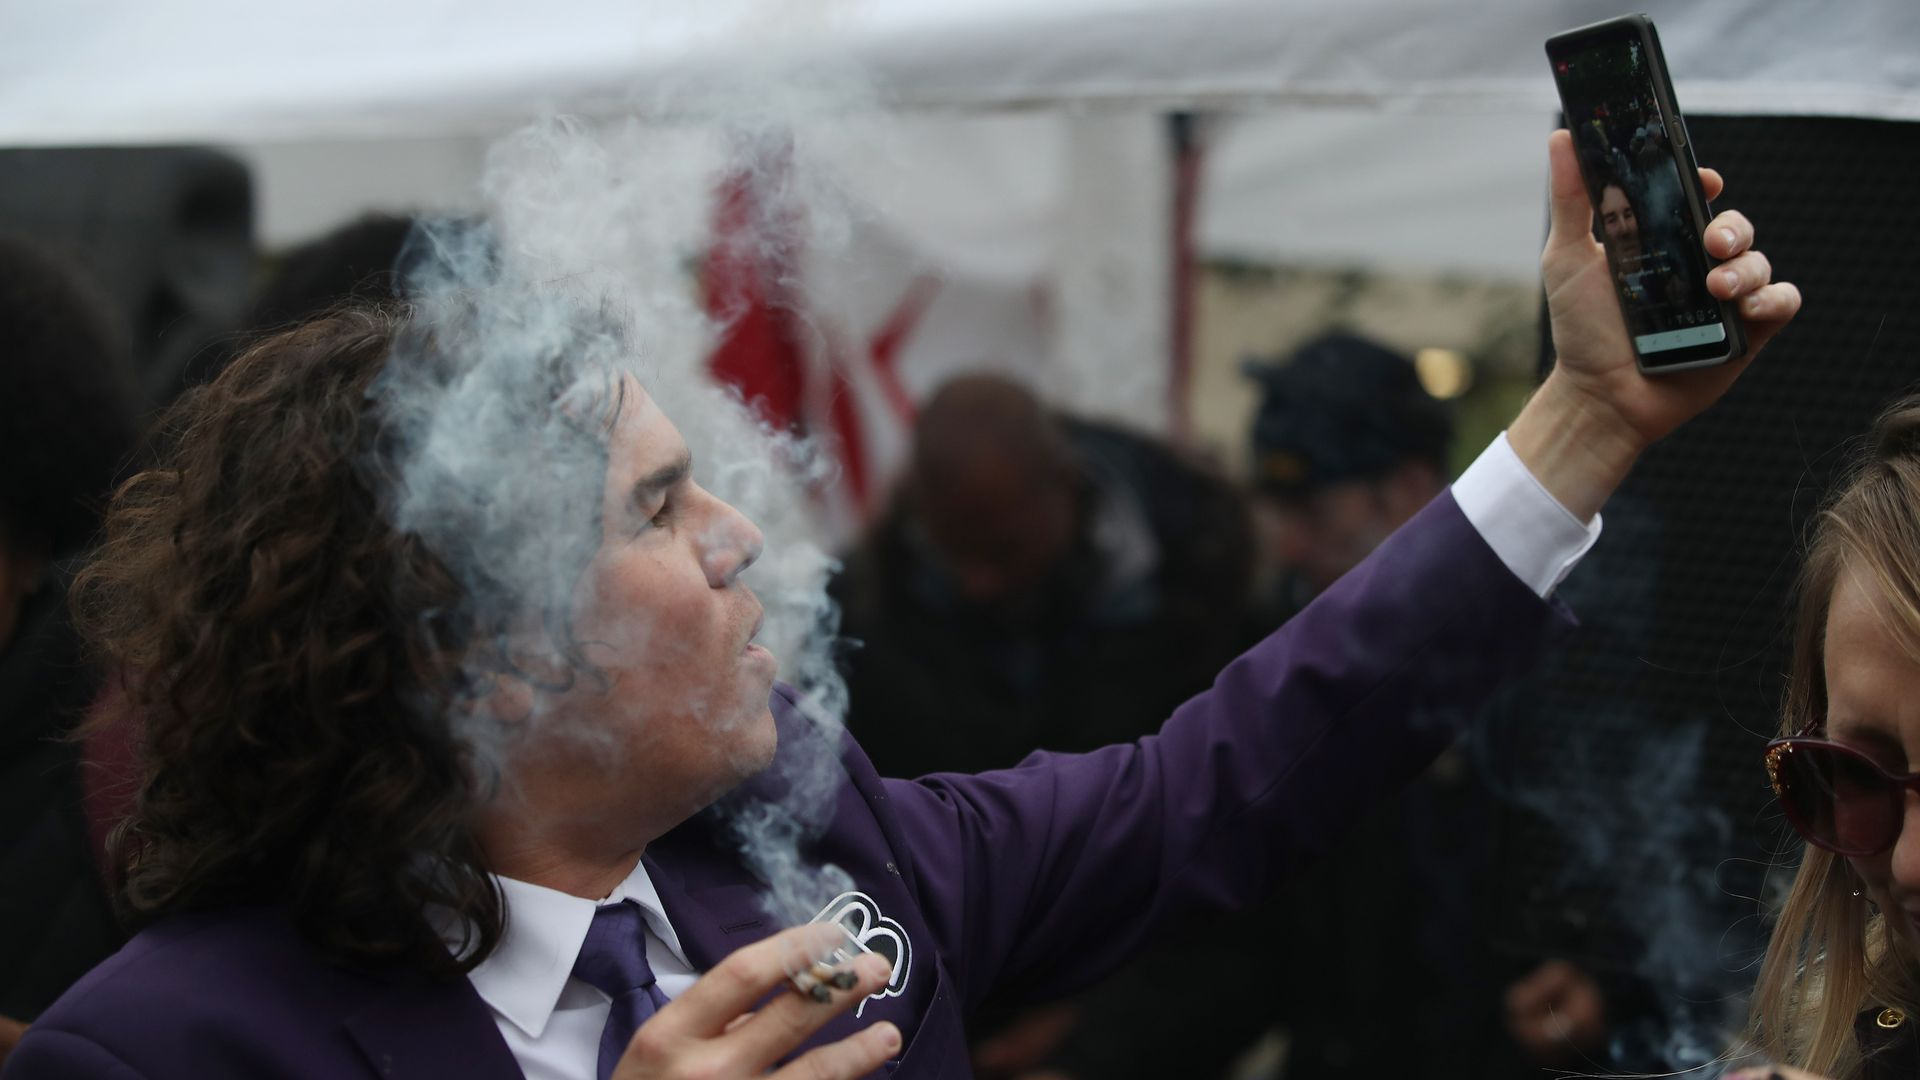 In this image, a man in a suit takes a selfie while smoking.